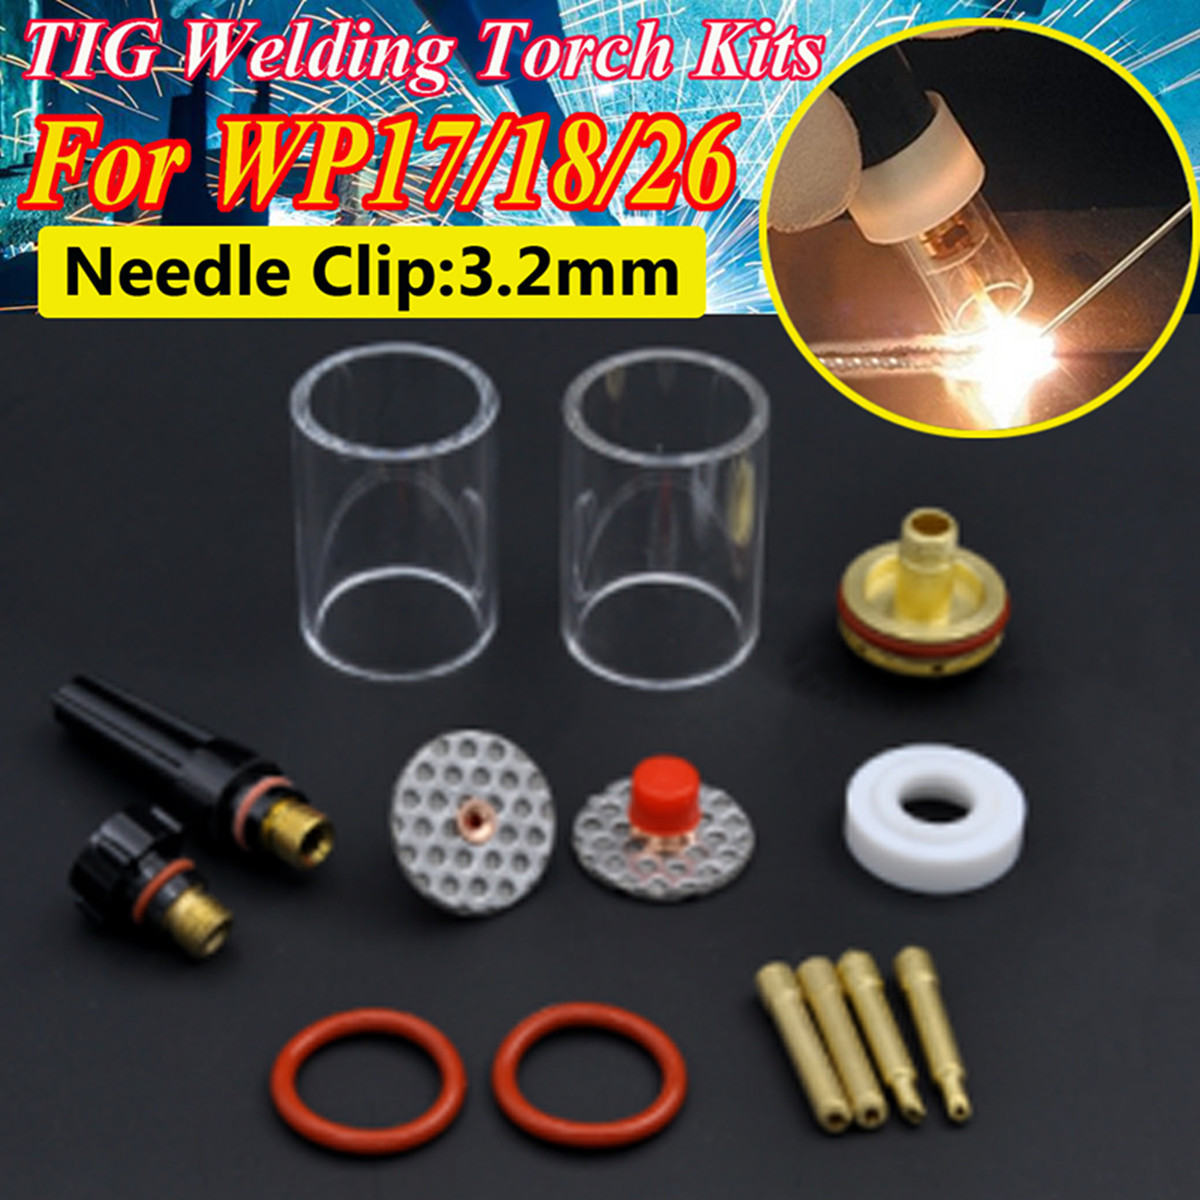 New 14PCS TIG Welding Torch Stubby Gas Lens Glass Pyrex Cup Kit 3.2mm 1/8 For WP17/18/26 Welding Series new 1 1 6 2 4 3 2mm 45pcs tig welding torch stubby gas lens glass pyrex cup kit for wp 17 18 26 series welding tool accessories